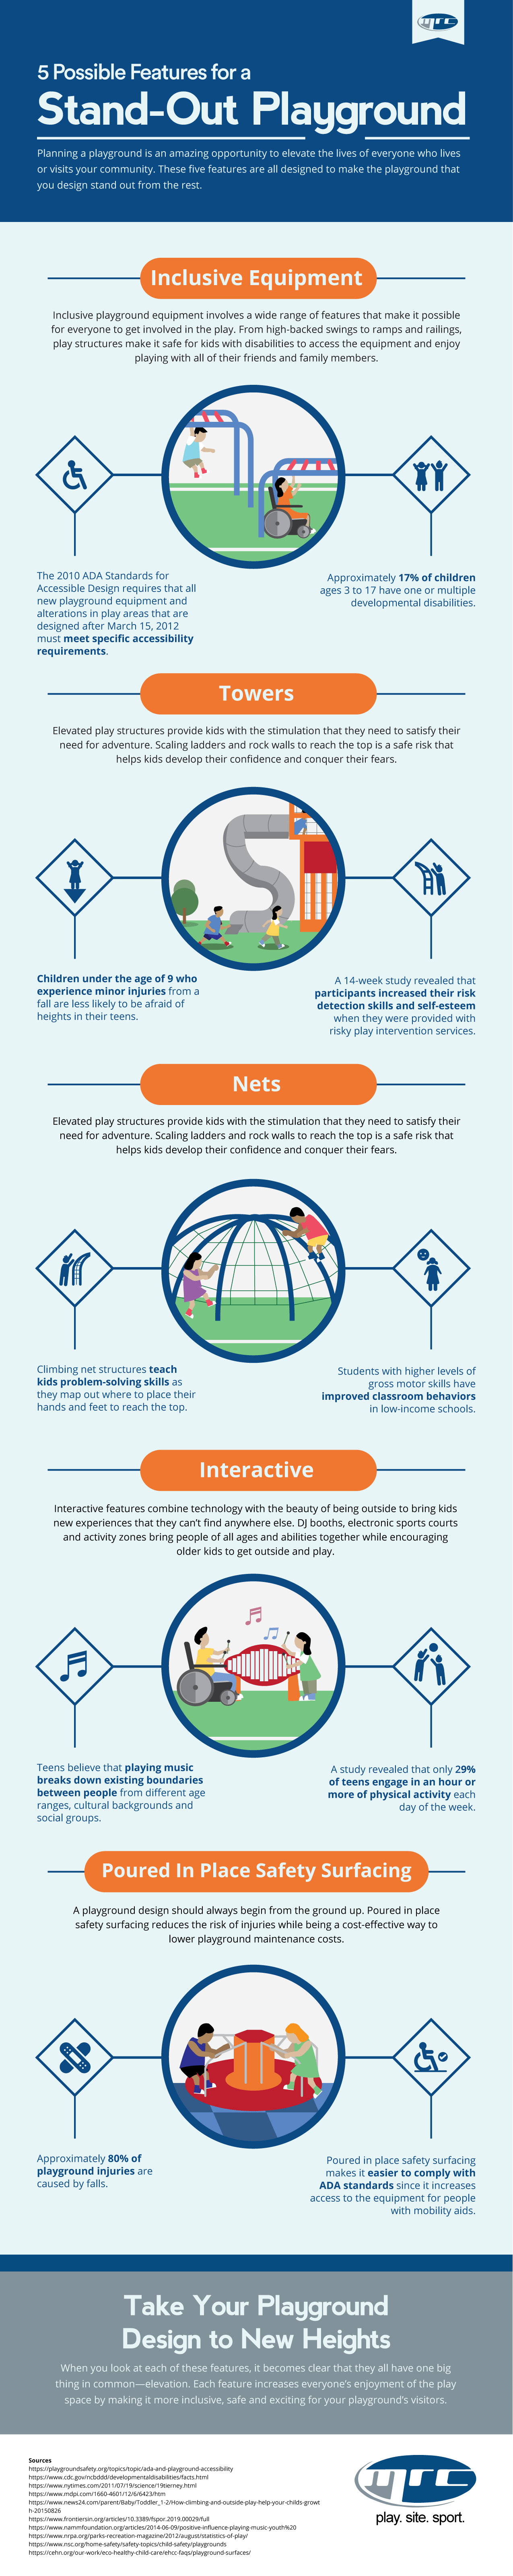 Features of a Standout Playground Infographic